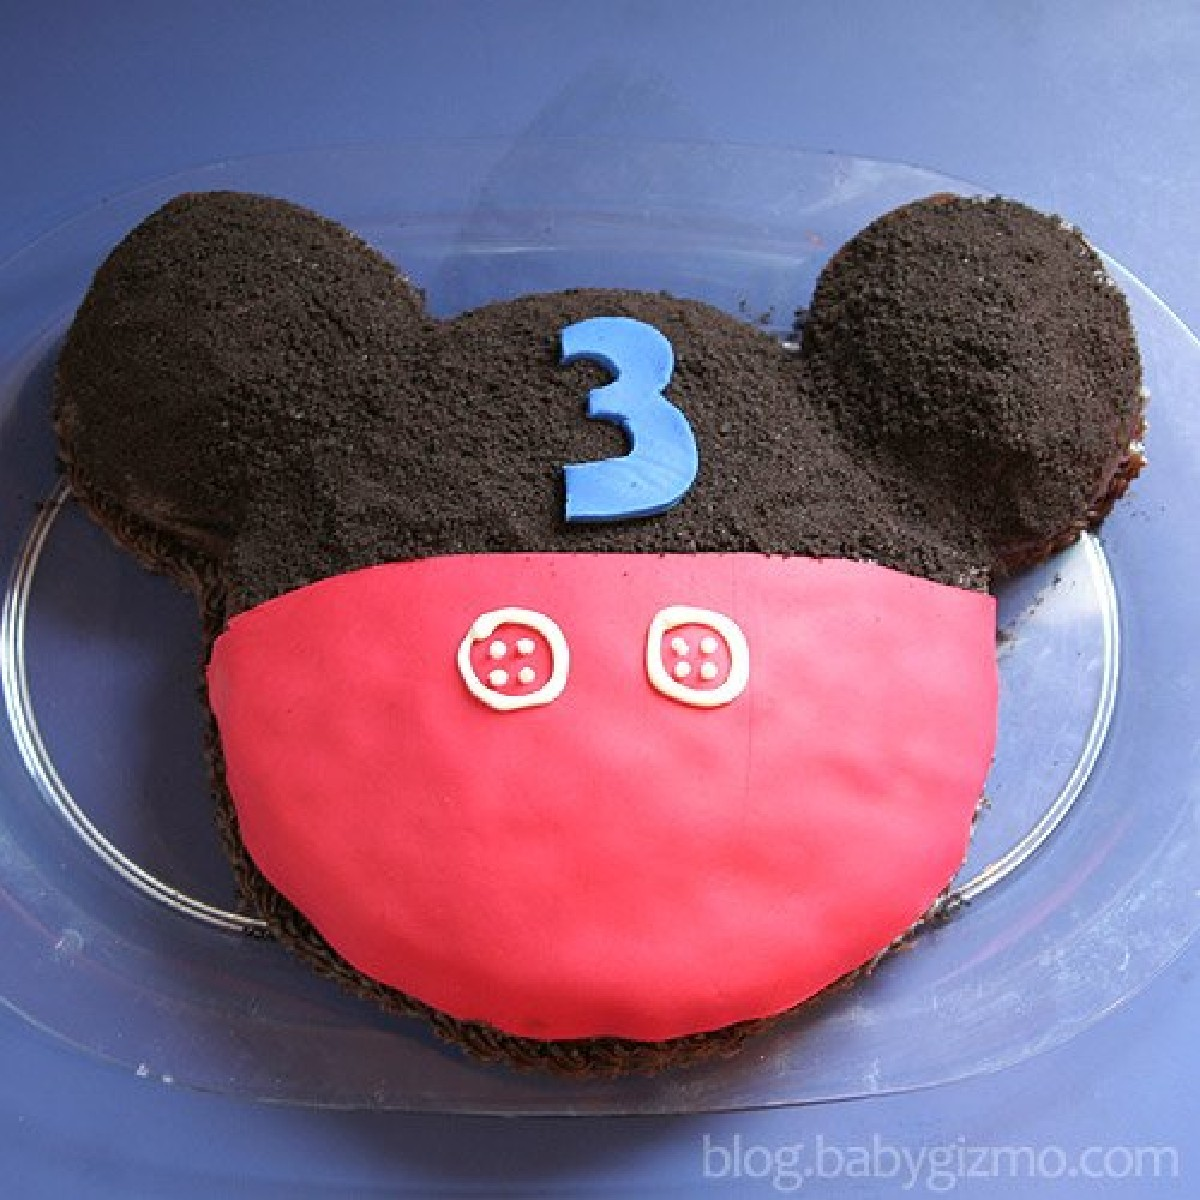 Mickey mouse cake with a 3 on it